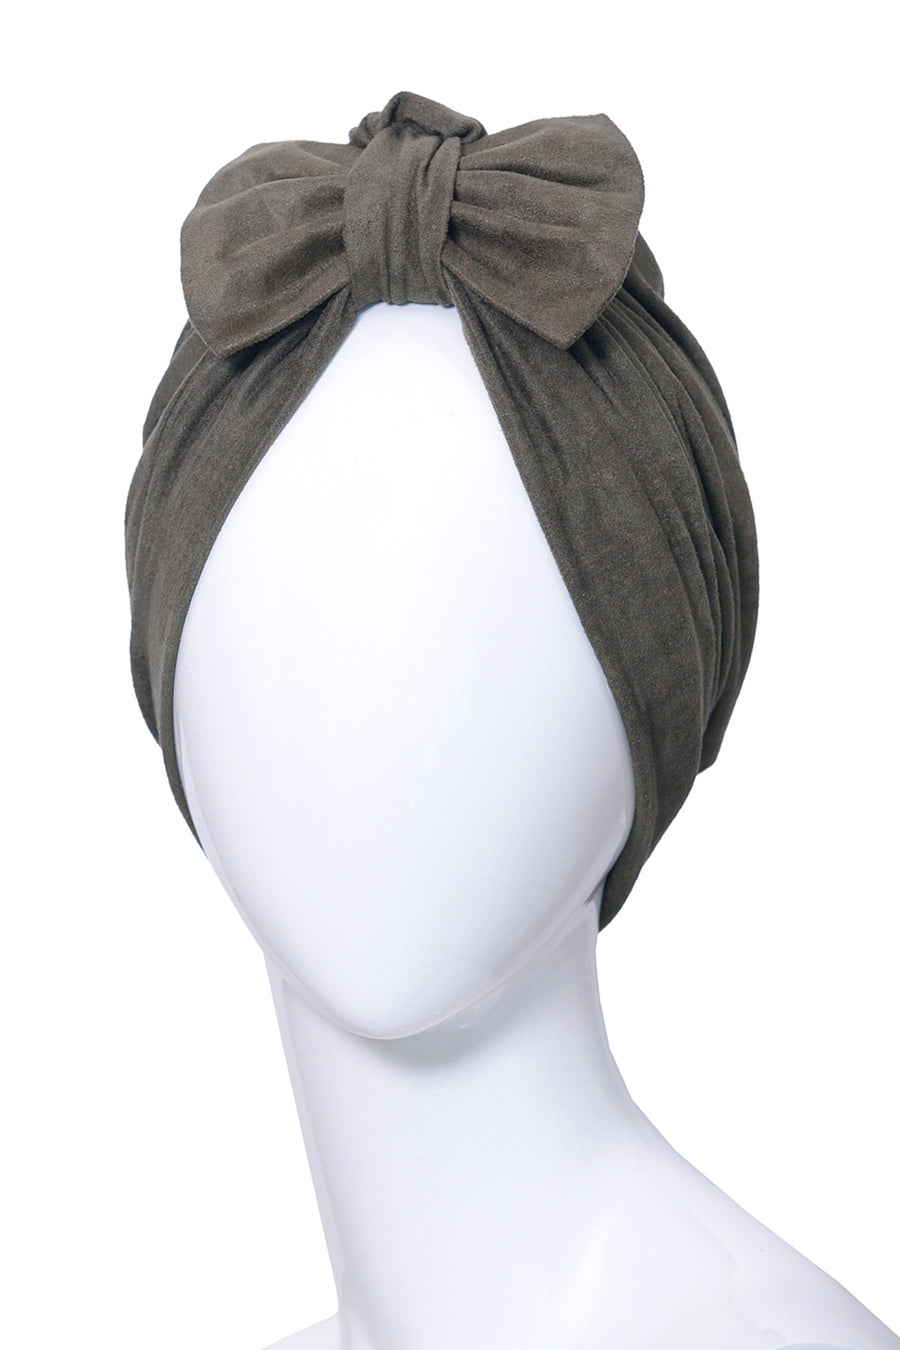 PARMENTIER Green Kaki Turban for women